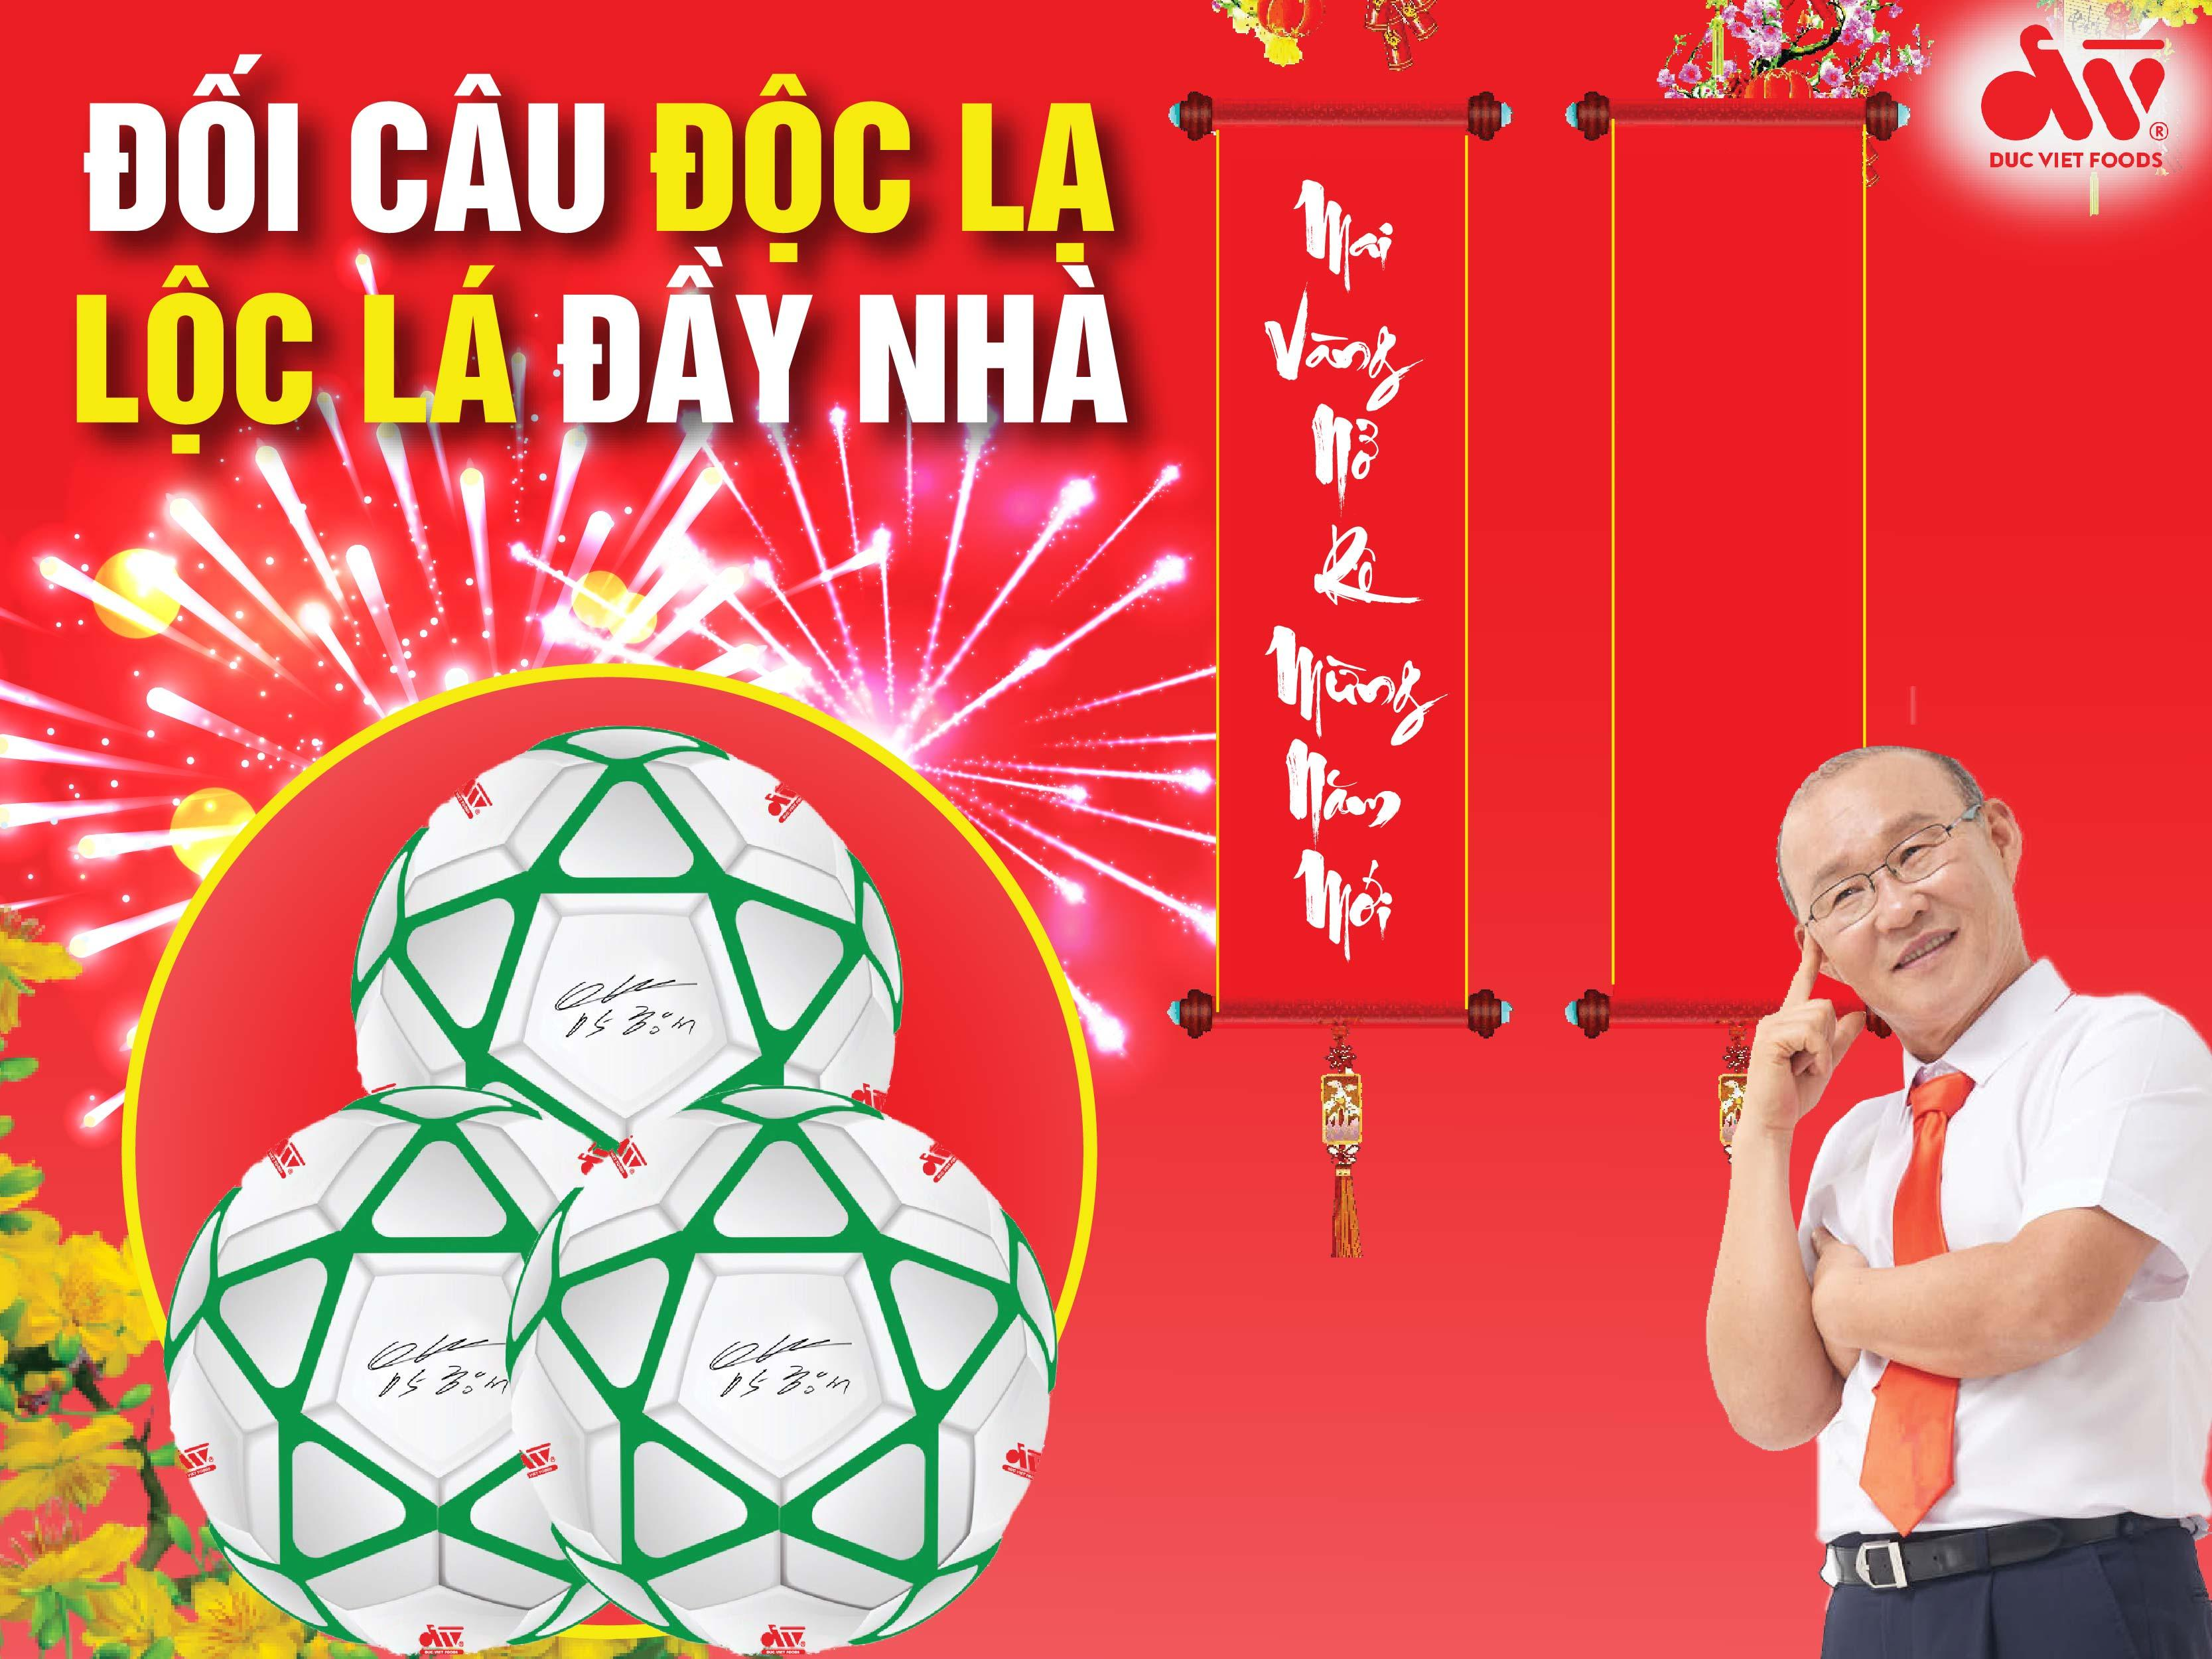 minigame-doi-cau-doc-la-loc-la-day-nha